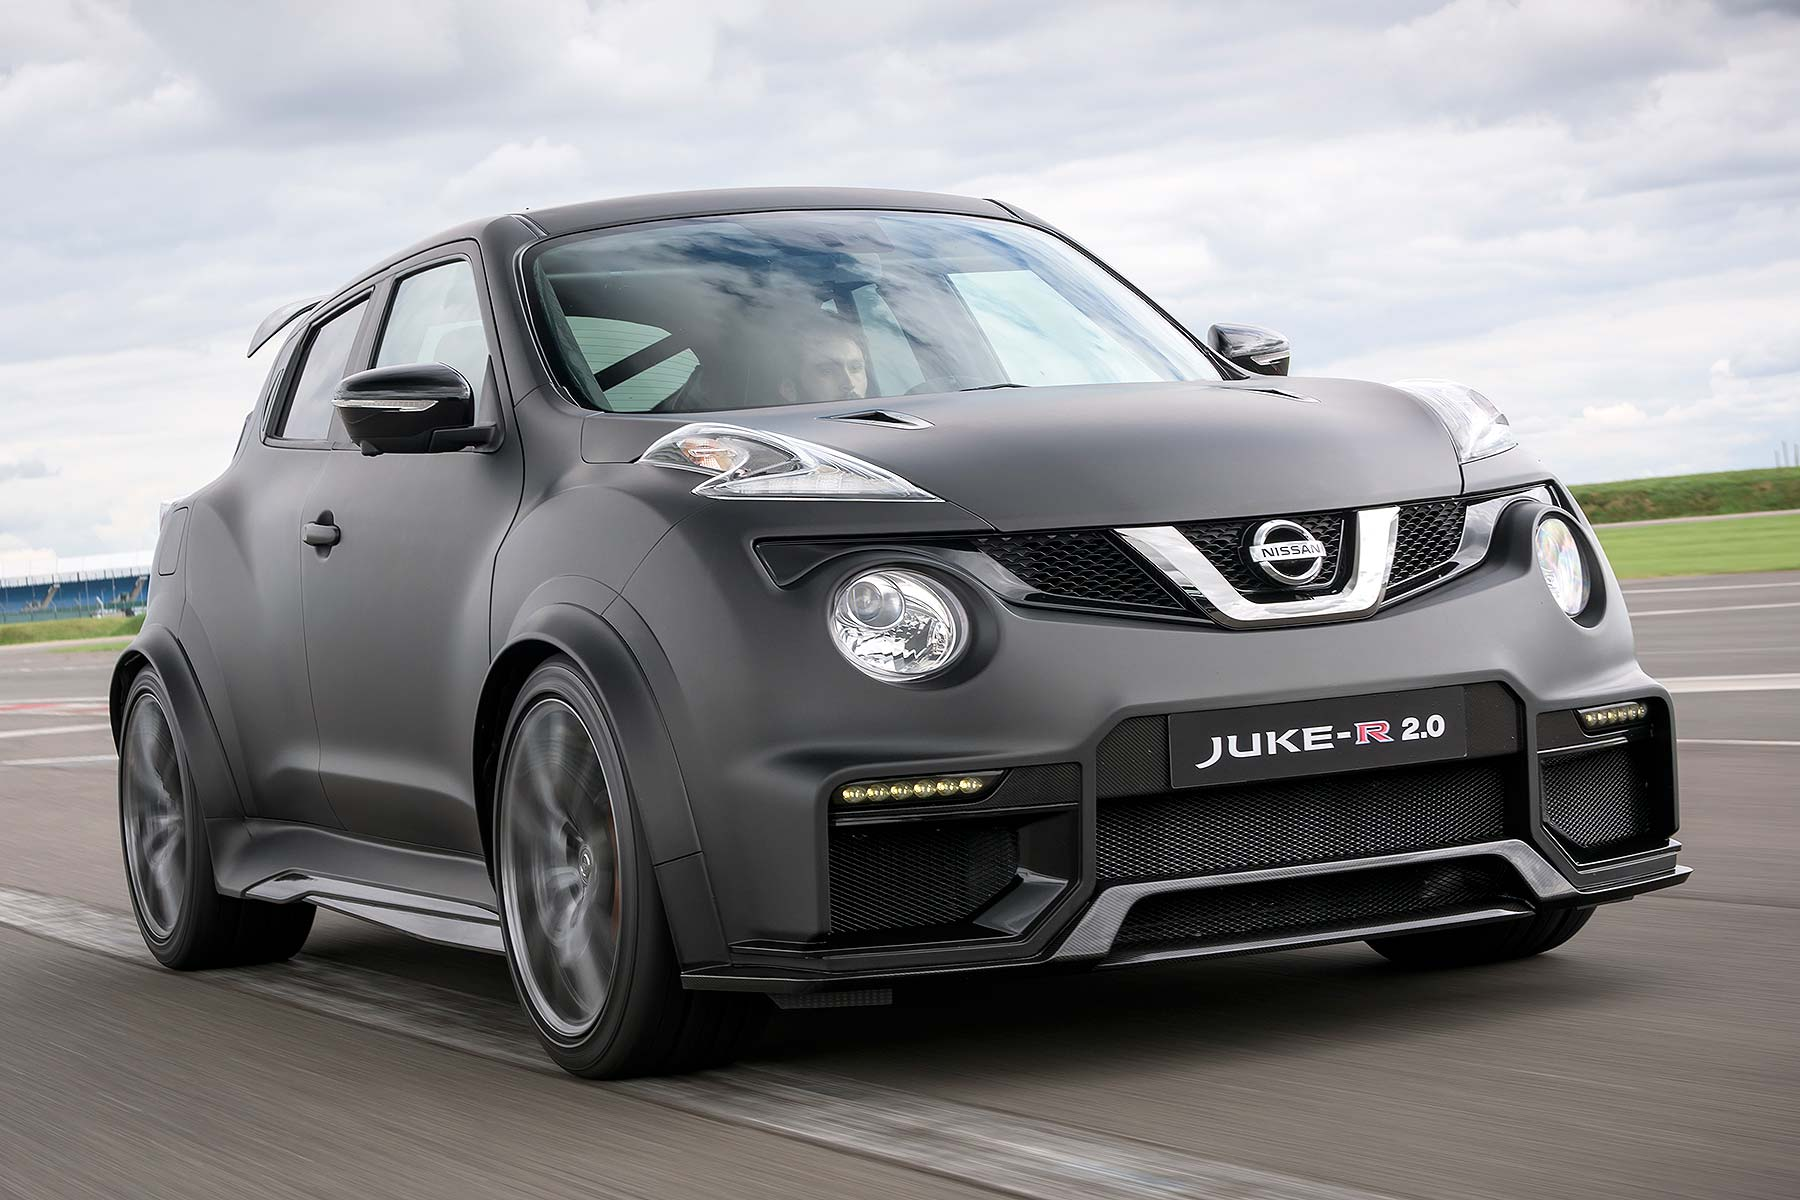 2014 nissan juke review and price new nissan cars 2014 html autos post. Black Bedroom Furniture Sets. Home Design Ideas